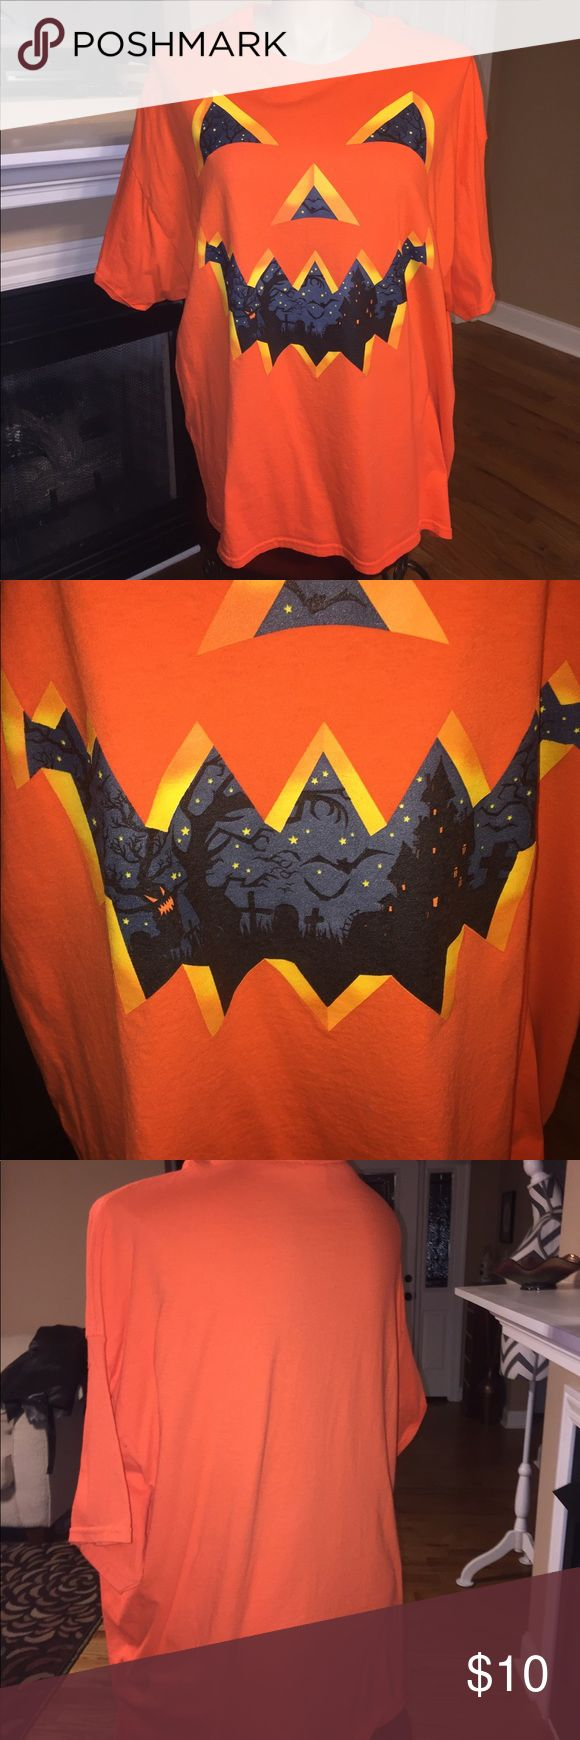 Halloween tshirt Super festive tshirt. Scary pumpkin with haunted house pictures in the face. Tops